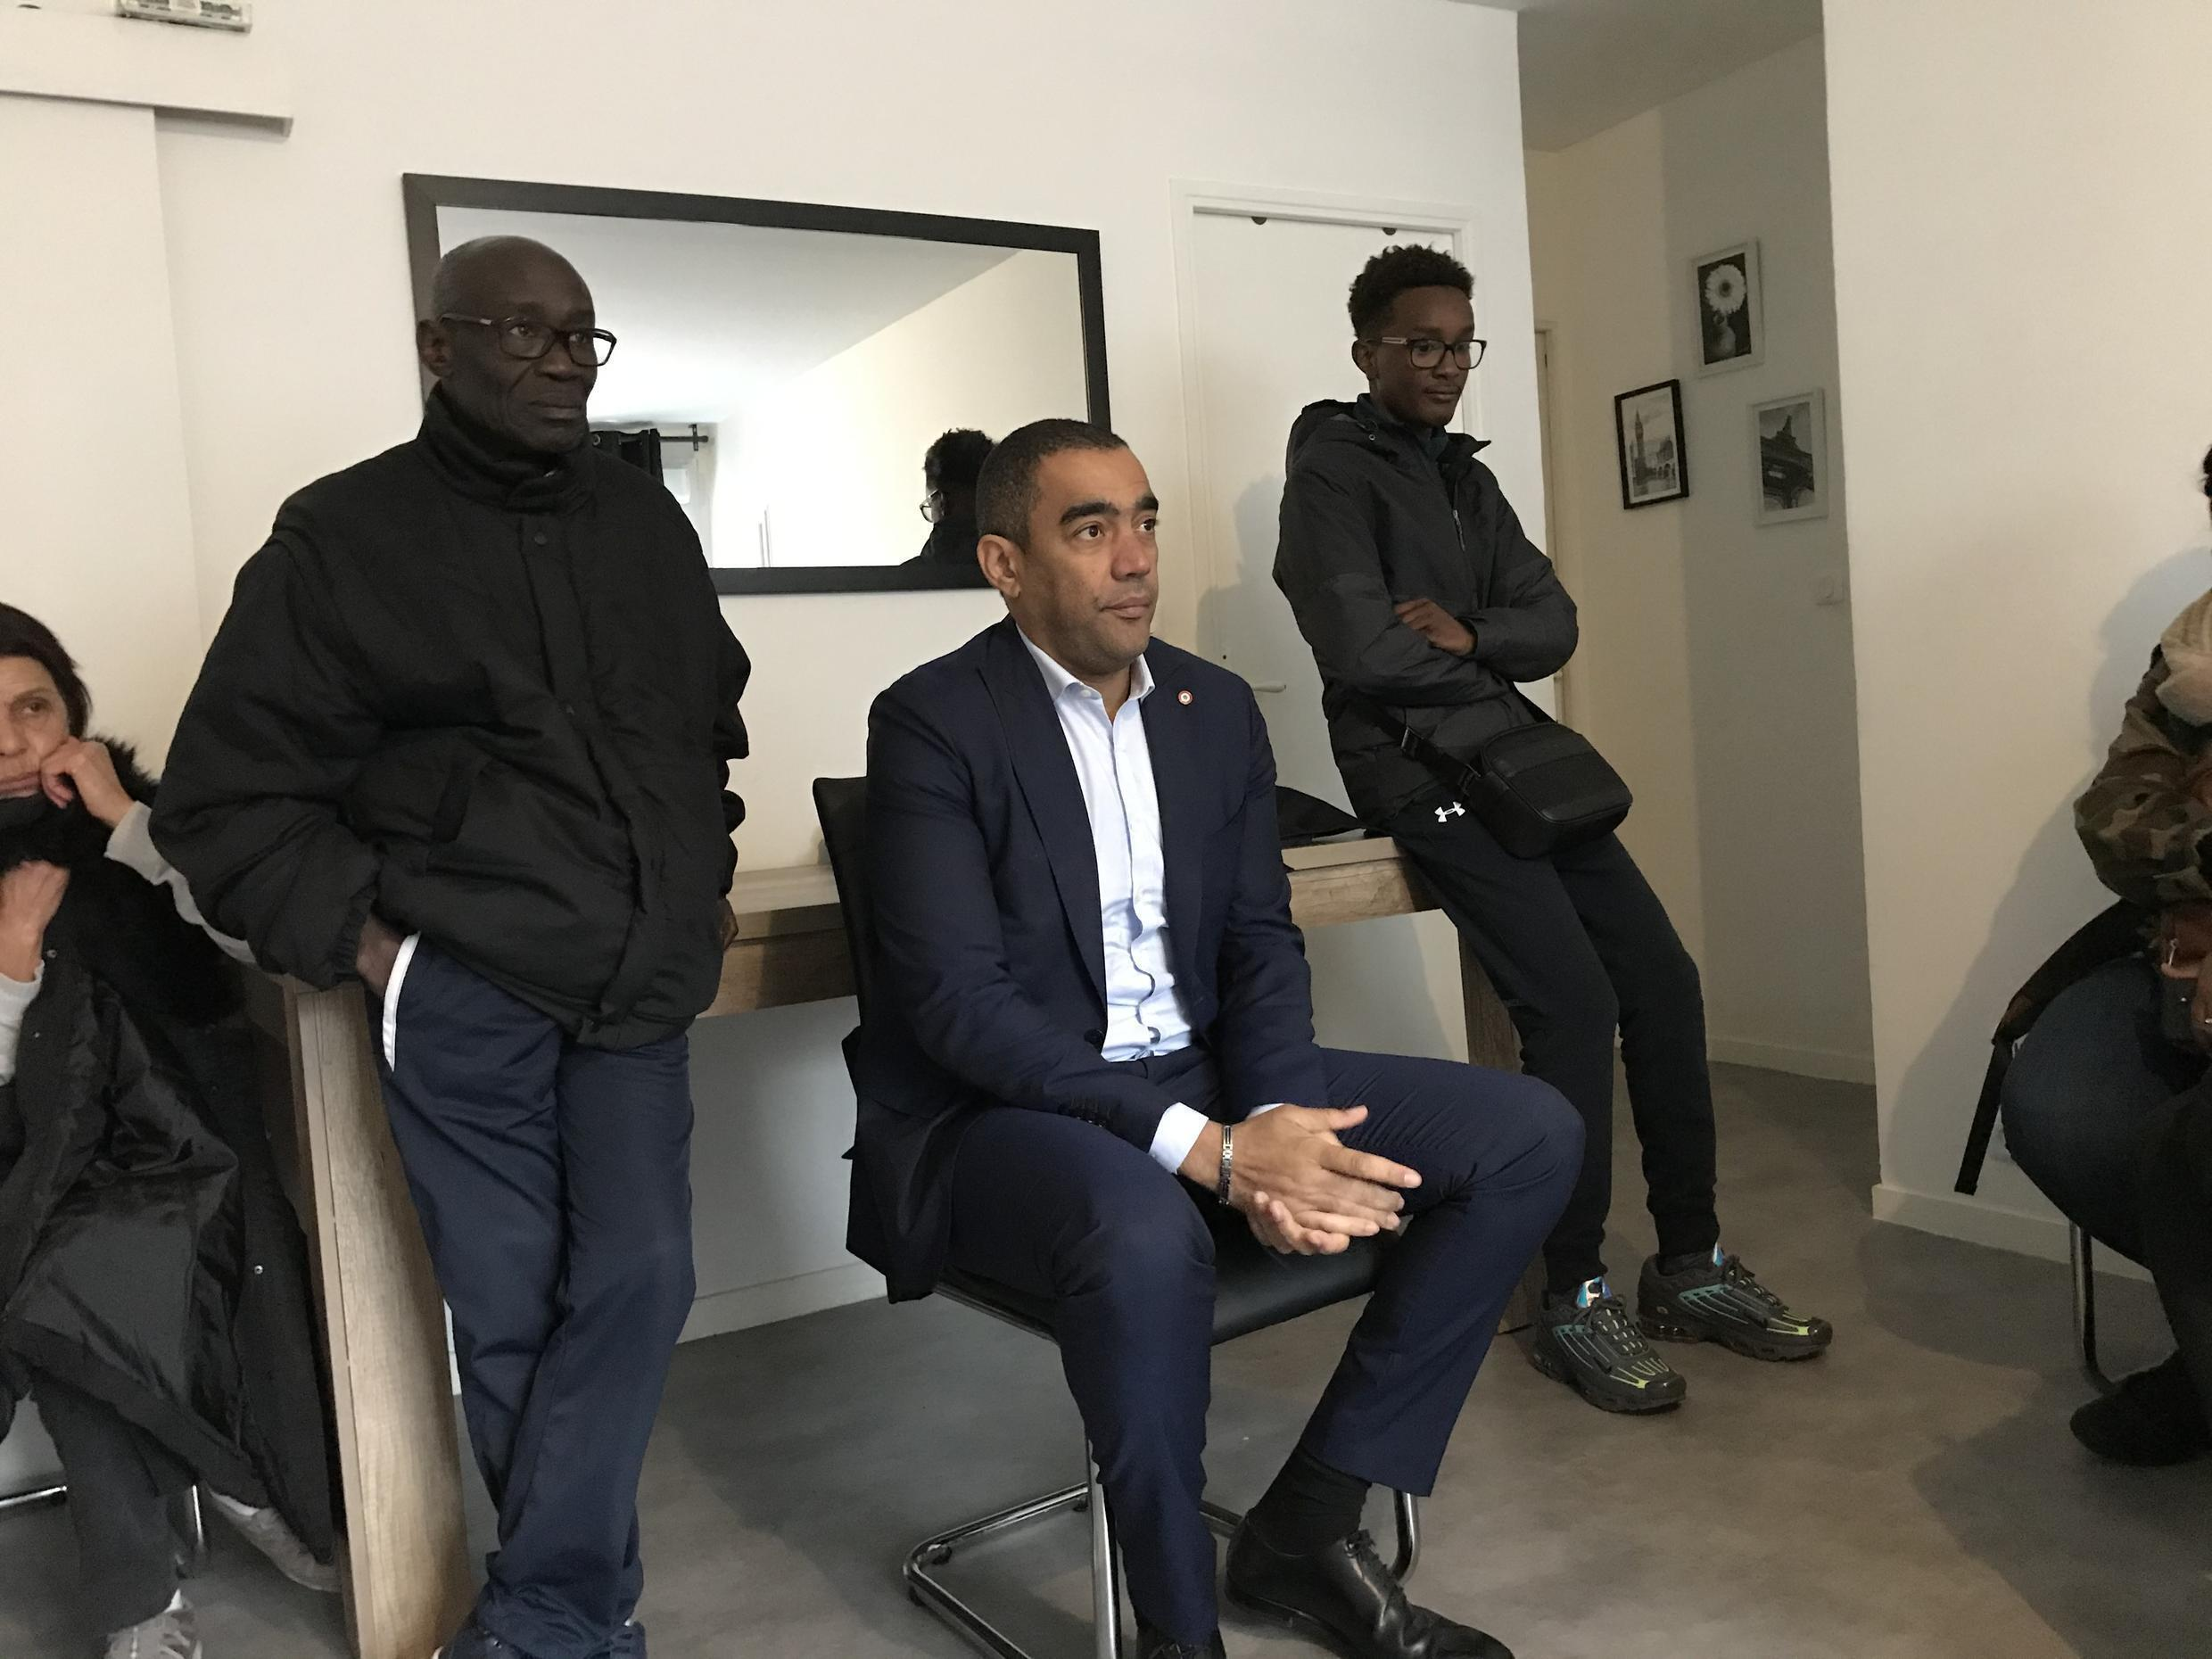 Saïd Ahamada, the candidate for France's ruling LREM party, acknowledges that residents of Marseille's northern districts have been discriminated again.